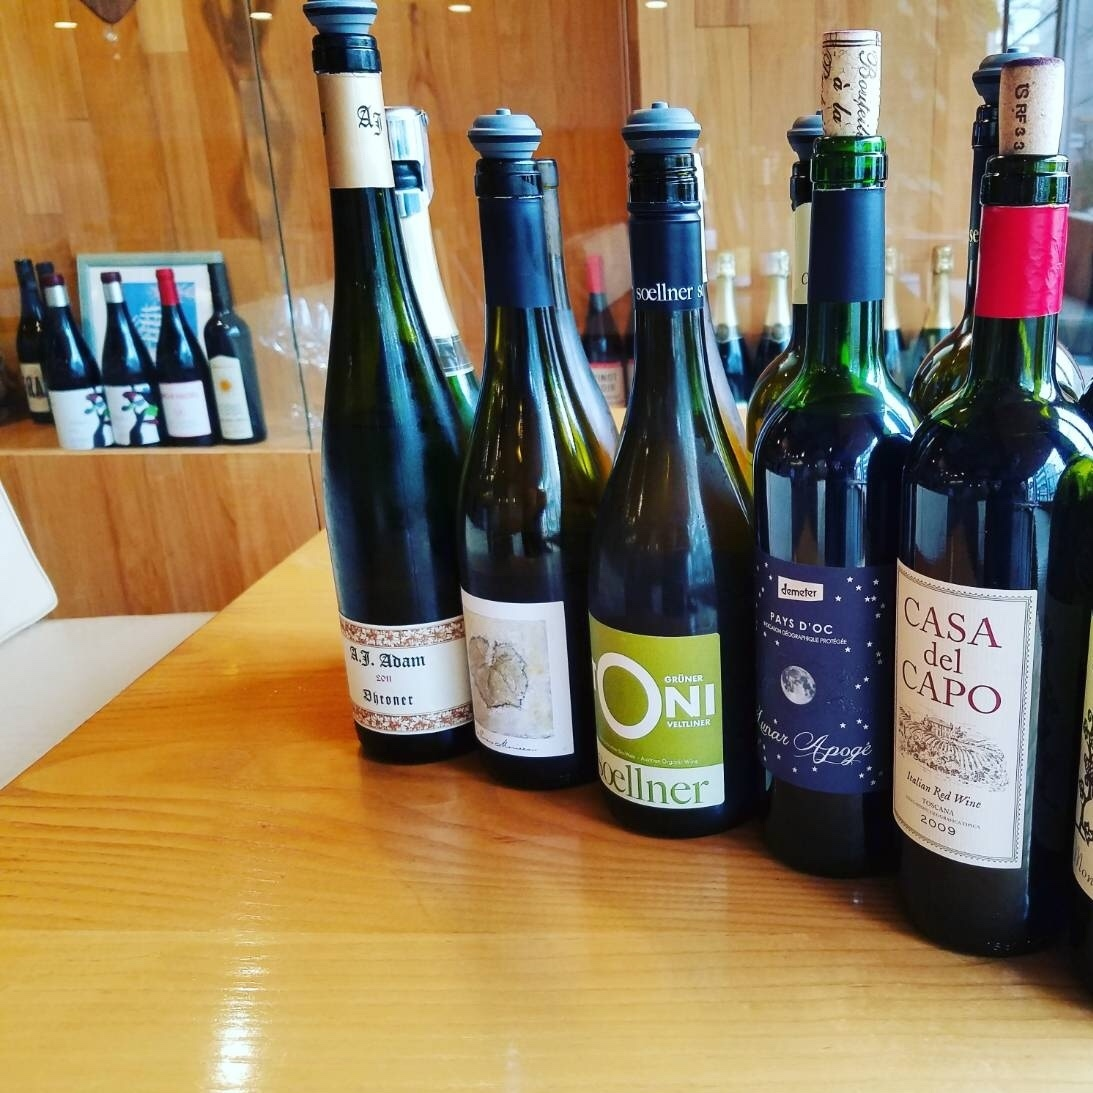 We have abundant selection of wines of sommelier